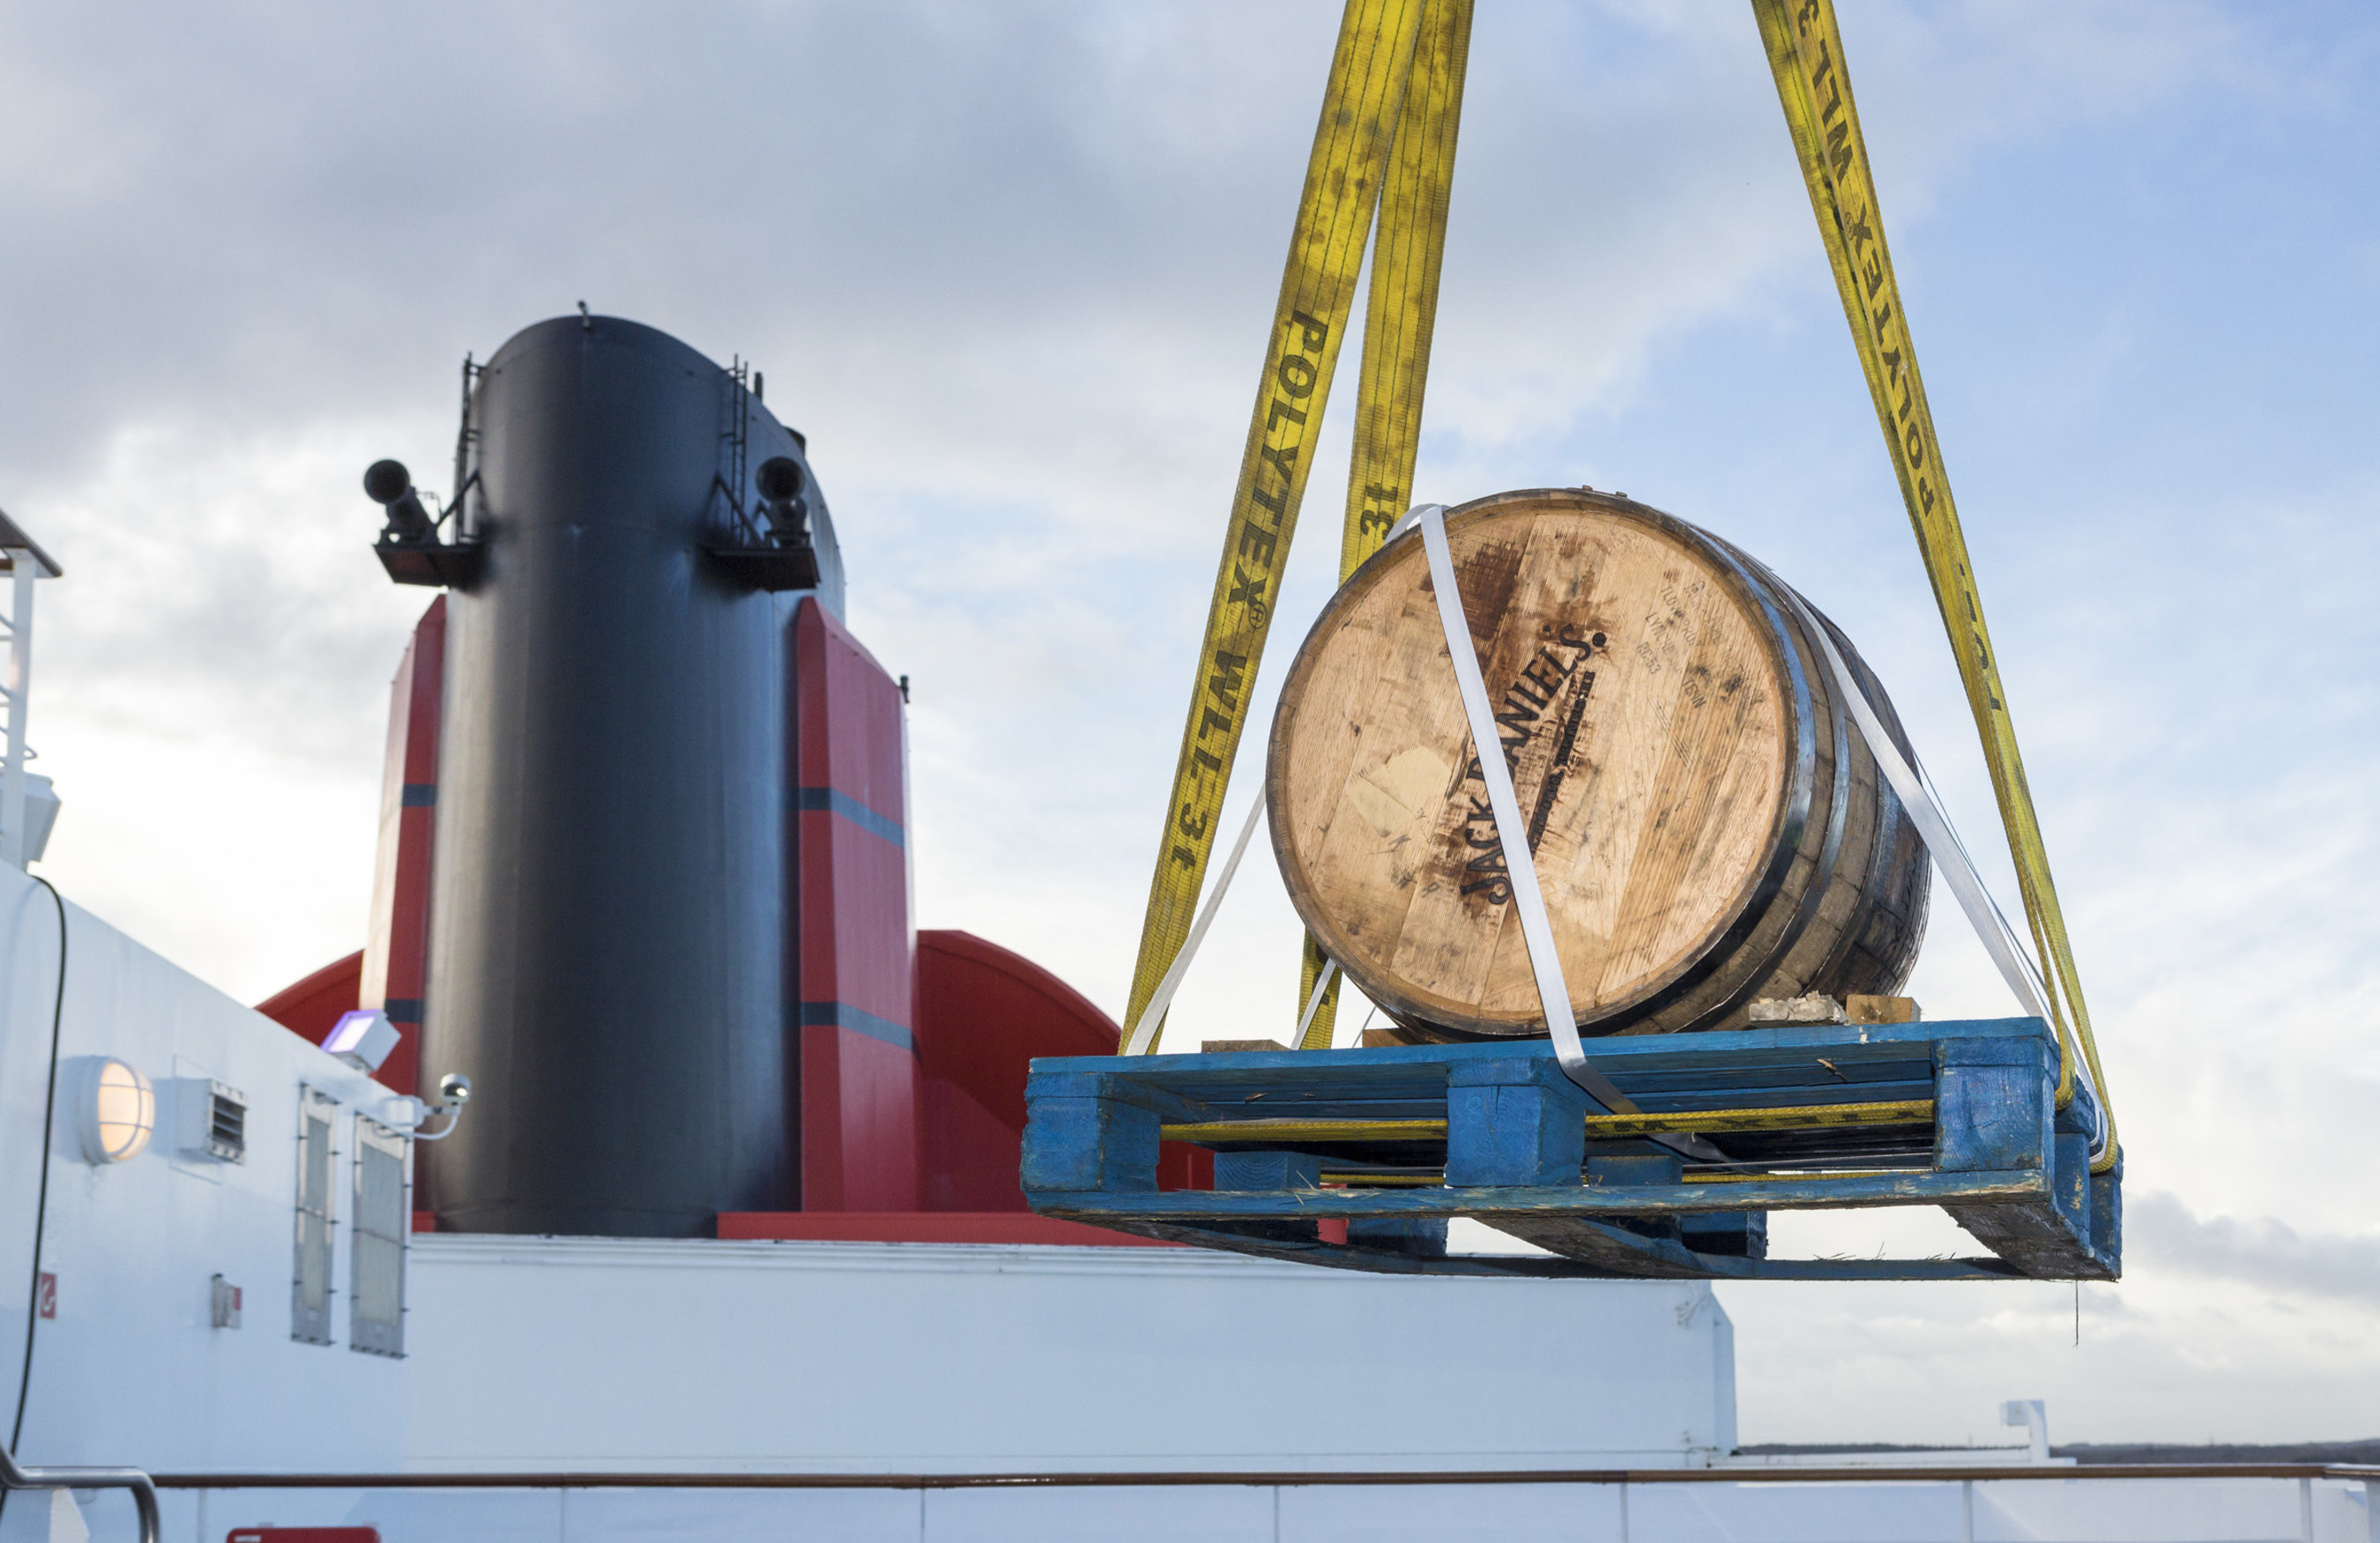 A 300 litre Jack Daniel's barrel being hoisted by crane onto Queen Mary 2 in Southampton, England on Sunday, Jan. 10, 2016.